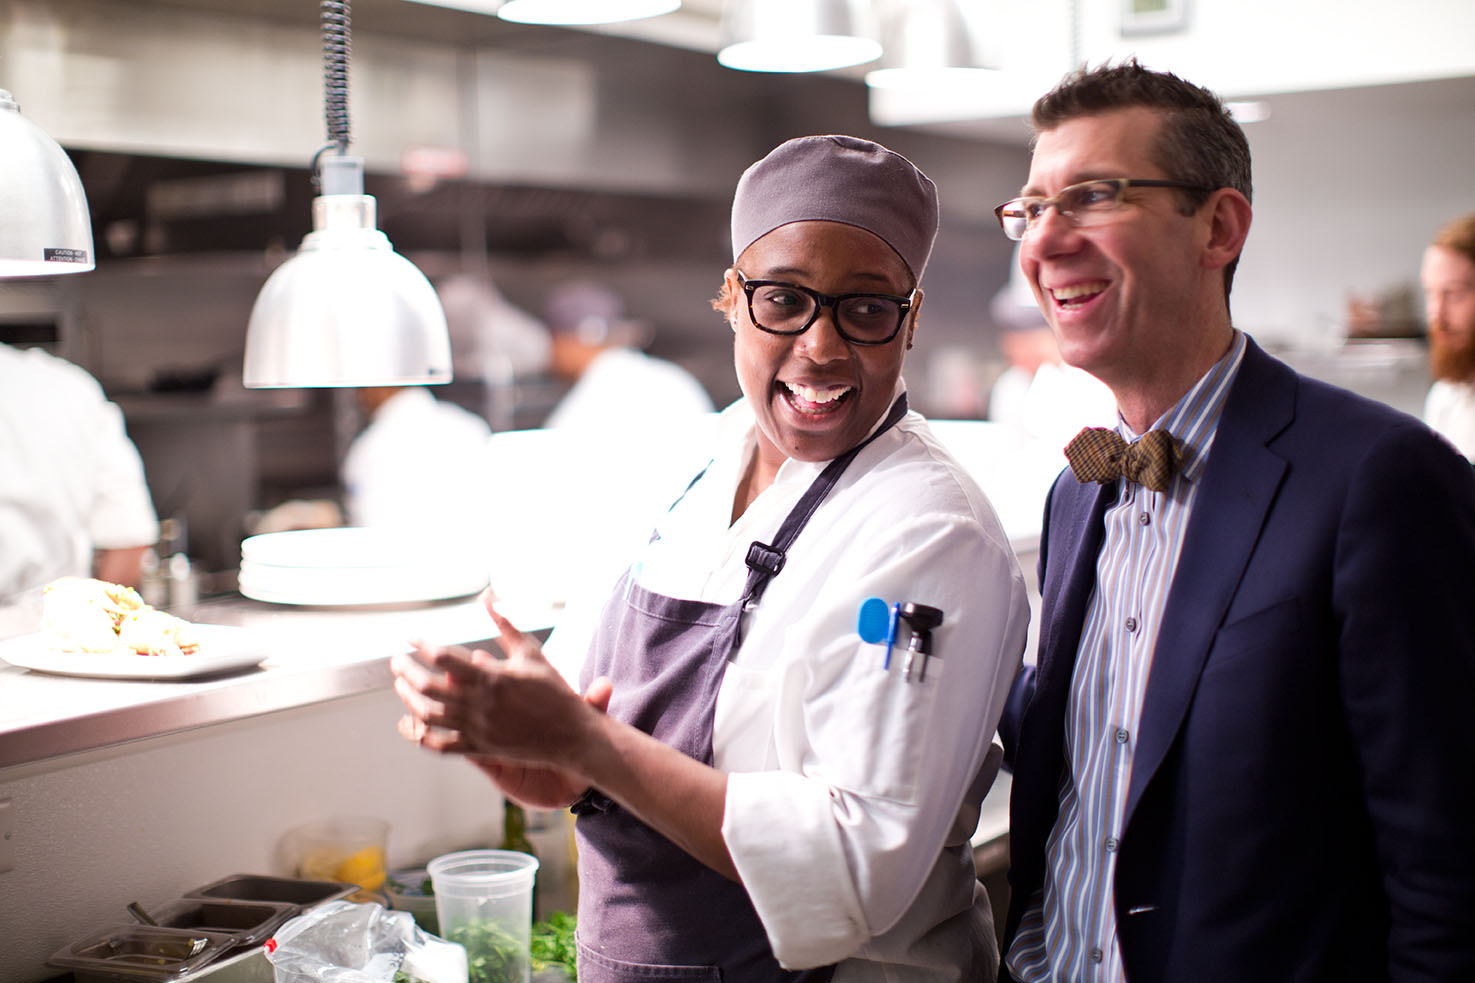 A woman and a man in a restaurant kitchen